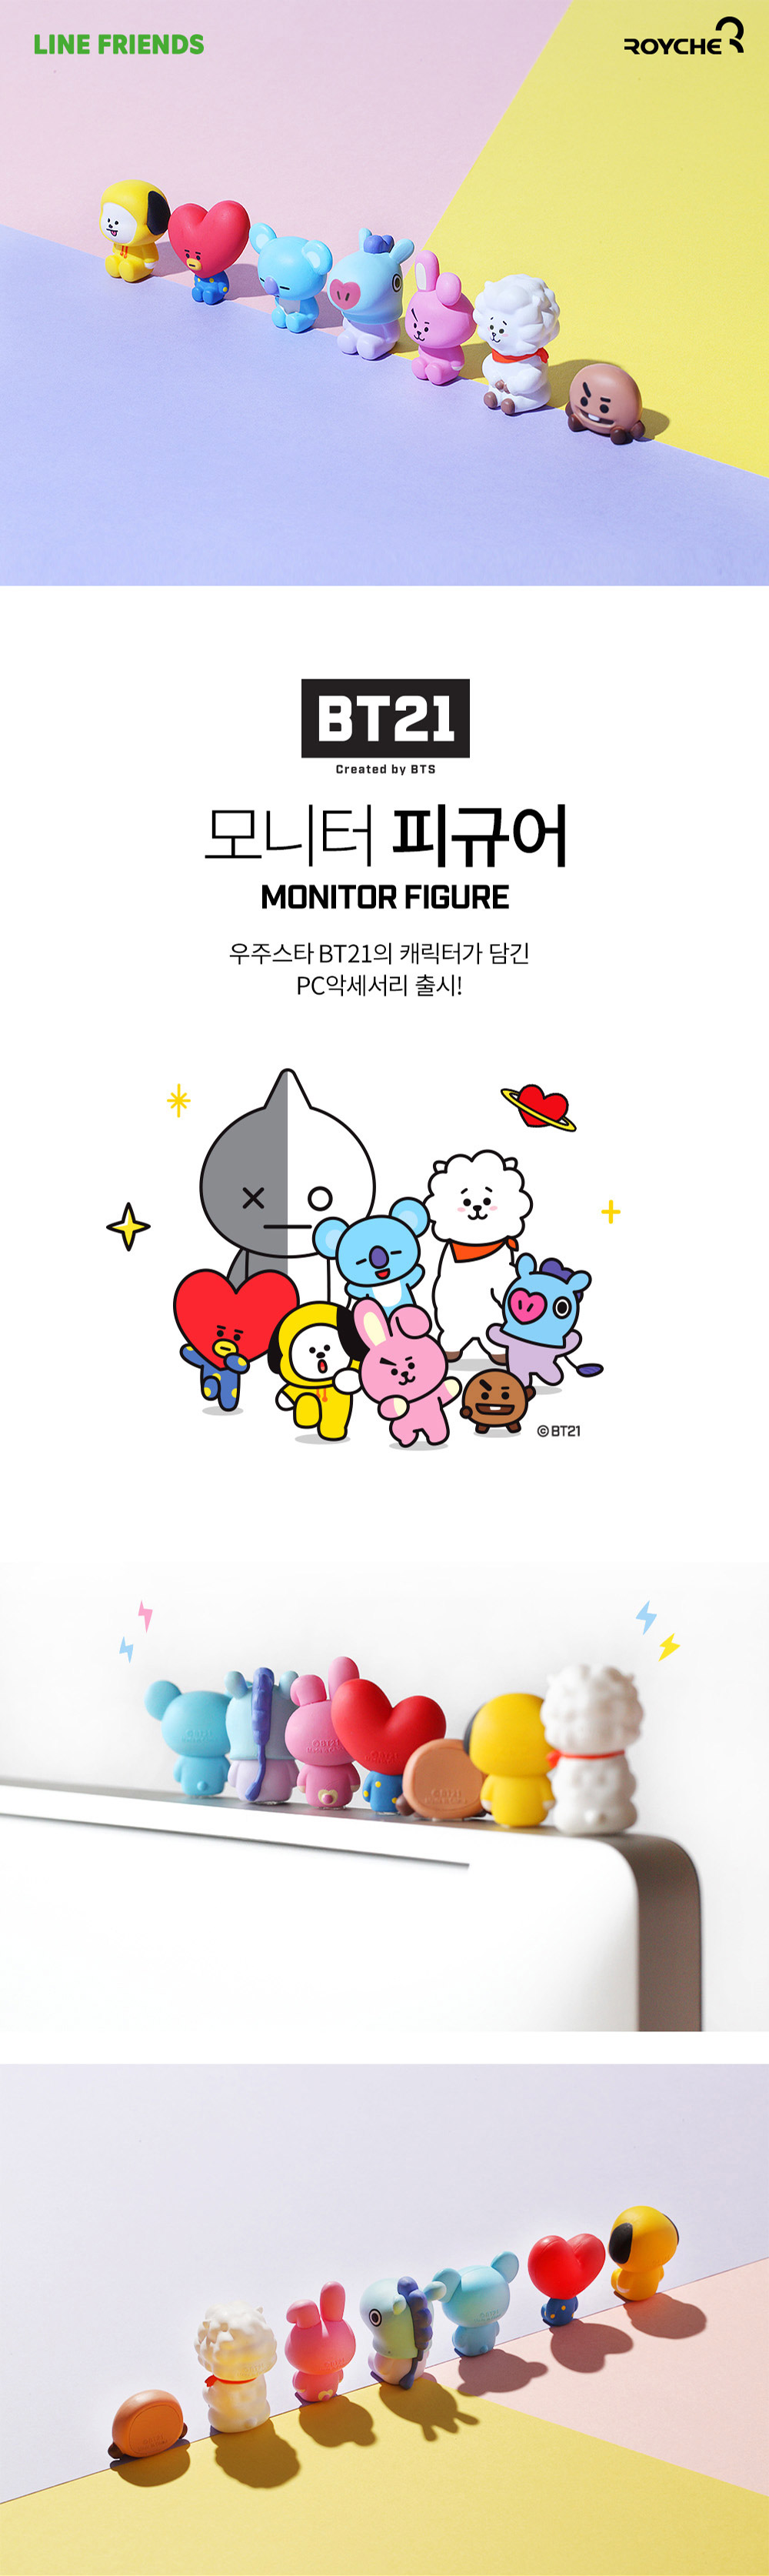 bt21_monitor_figure_01.jpg